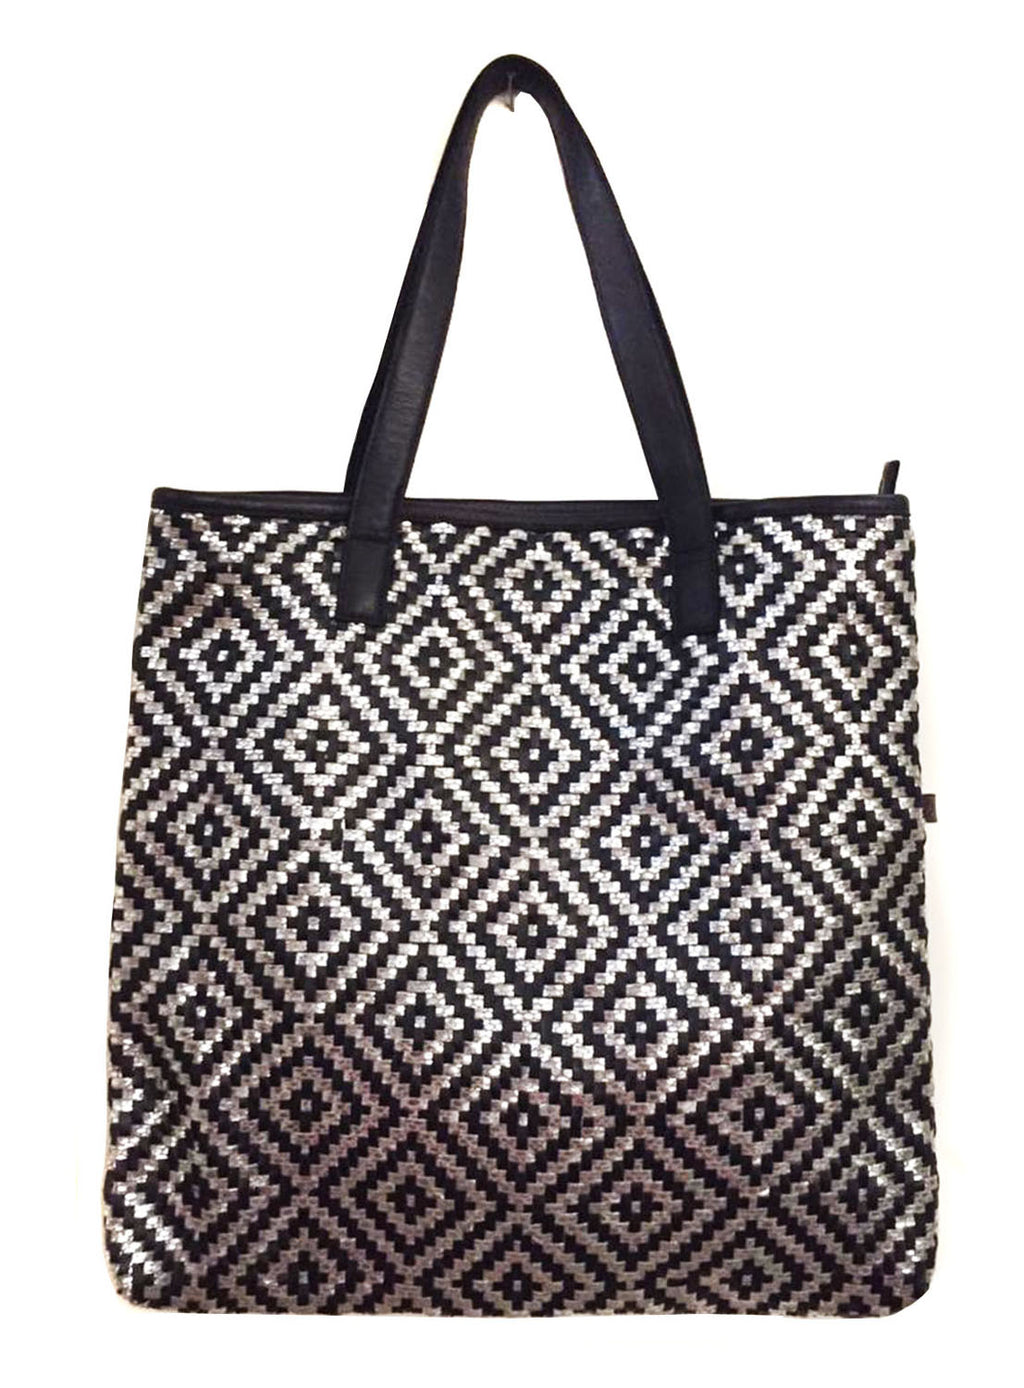 Australian Hotseller  Woman Leather Woven Metallic Tote Bag